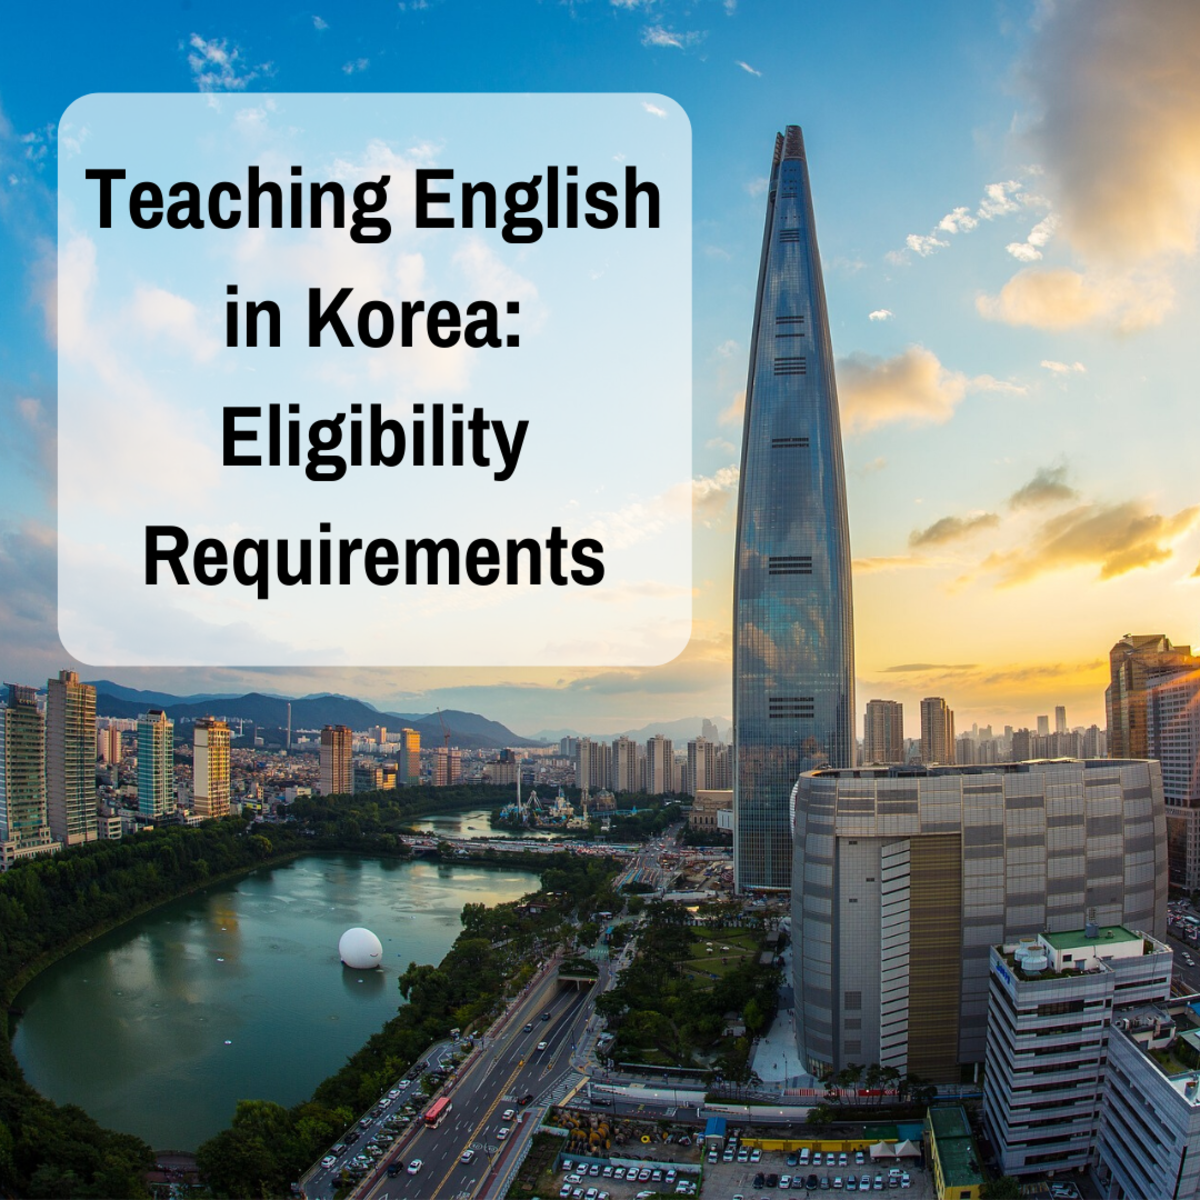 Learn whether or not you're eligible to teach English in South Korea by answering these five questions.